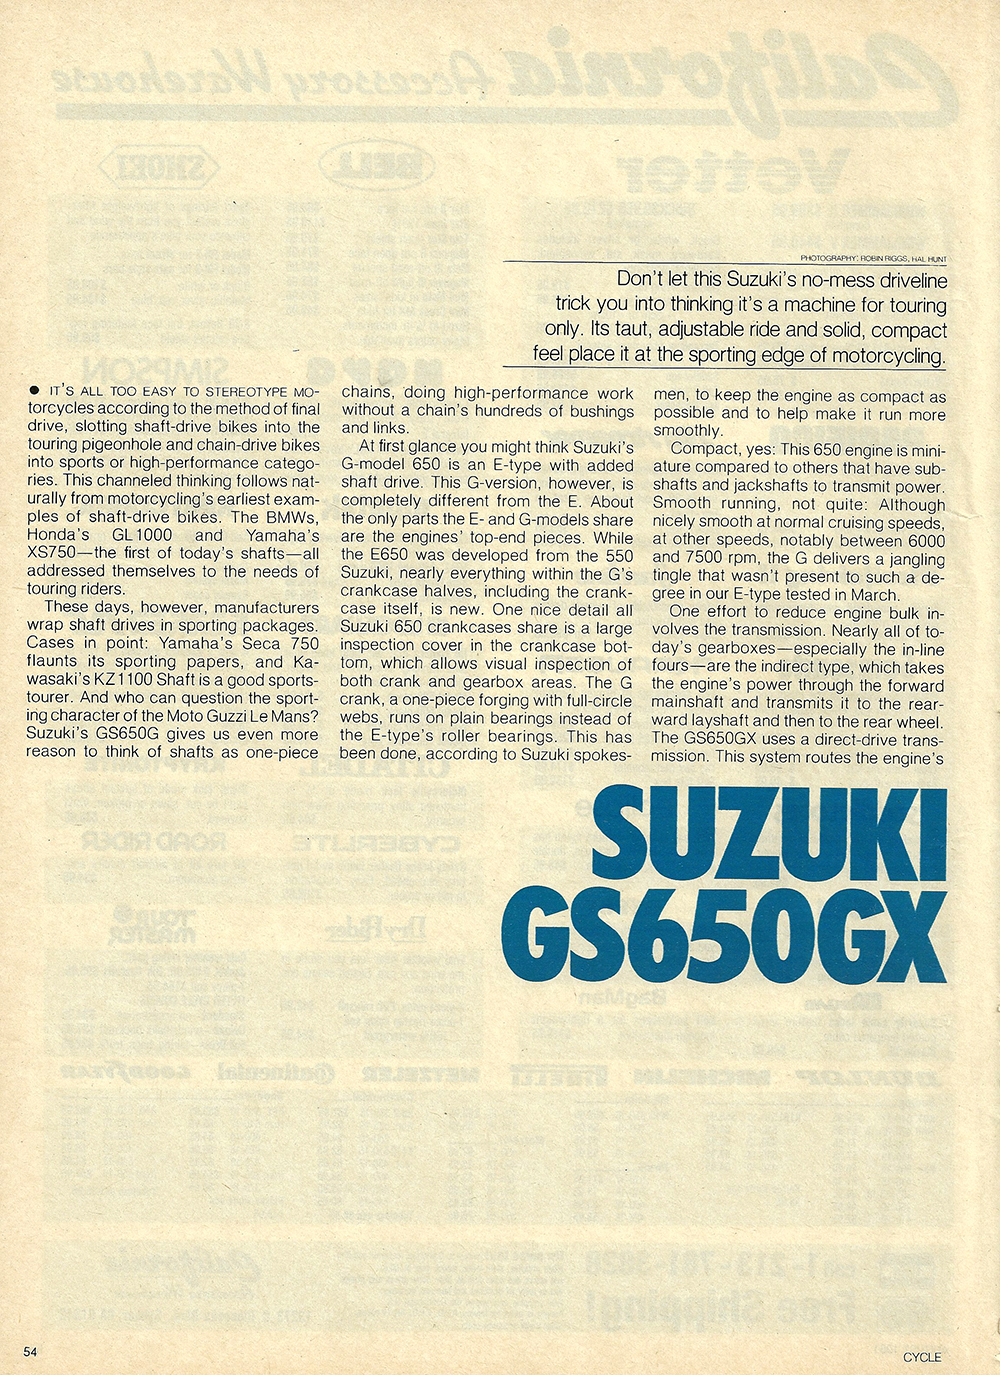 1981 Suzuki GS650 GX road test 01.jpg